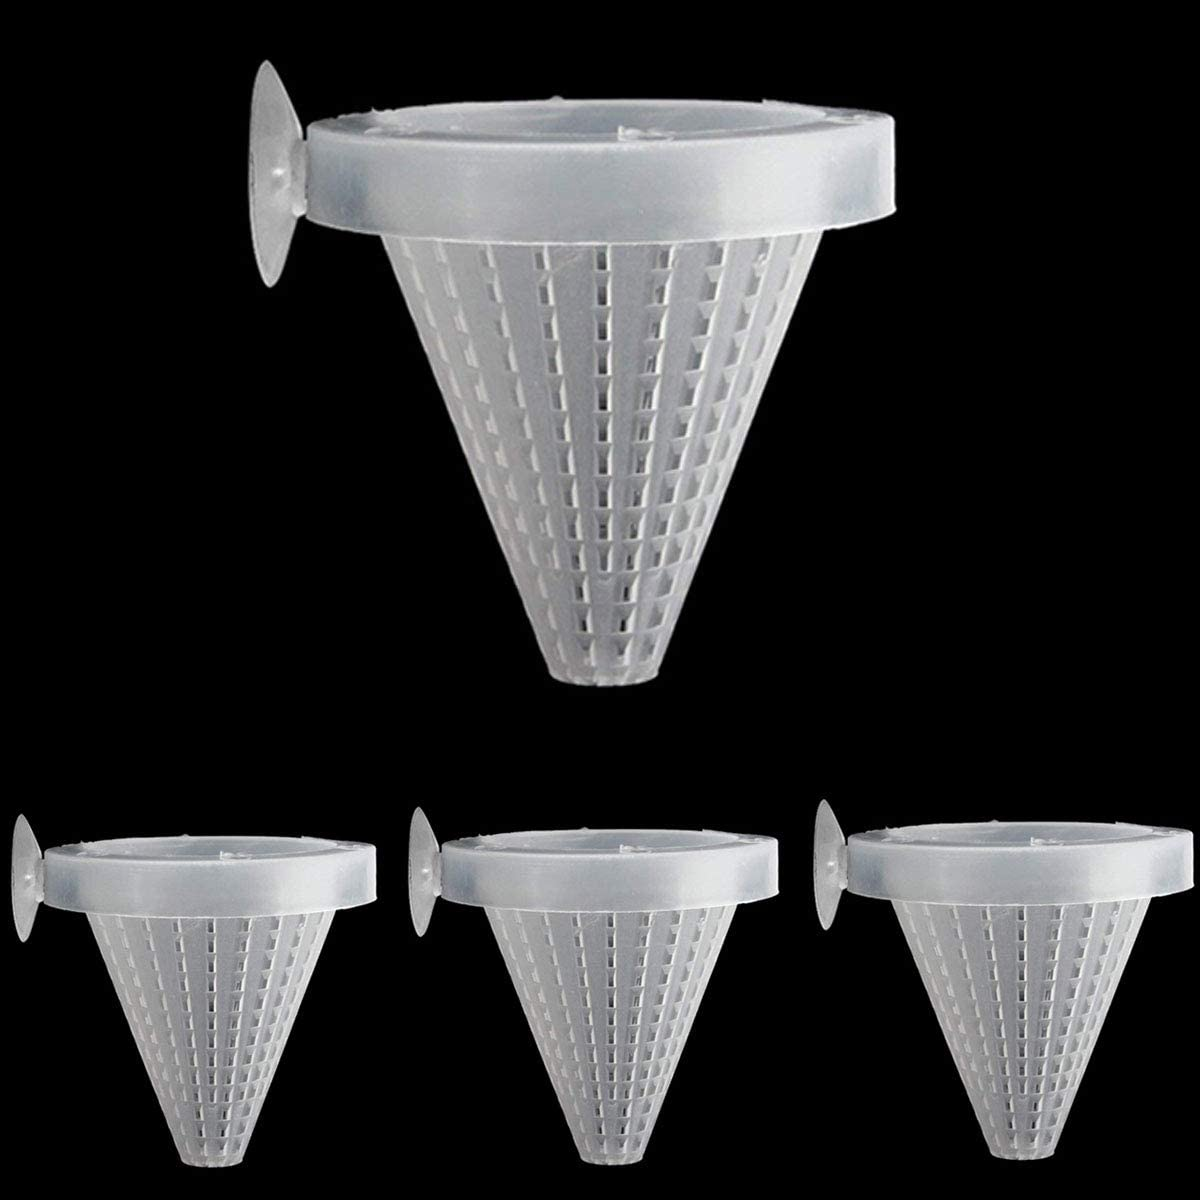 Ailindany 4PCS Aquarium Live Red Worm Feeding Cone Cup Plant Cup Brine Shrimp Plastic Fish Feeder for Aquariums with Suckers